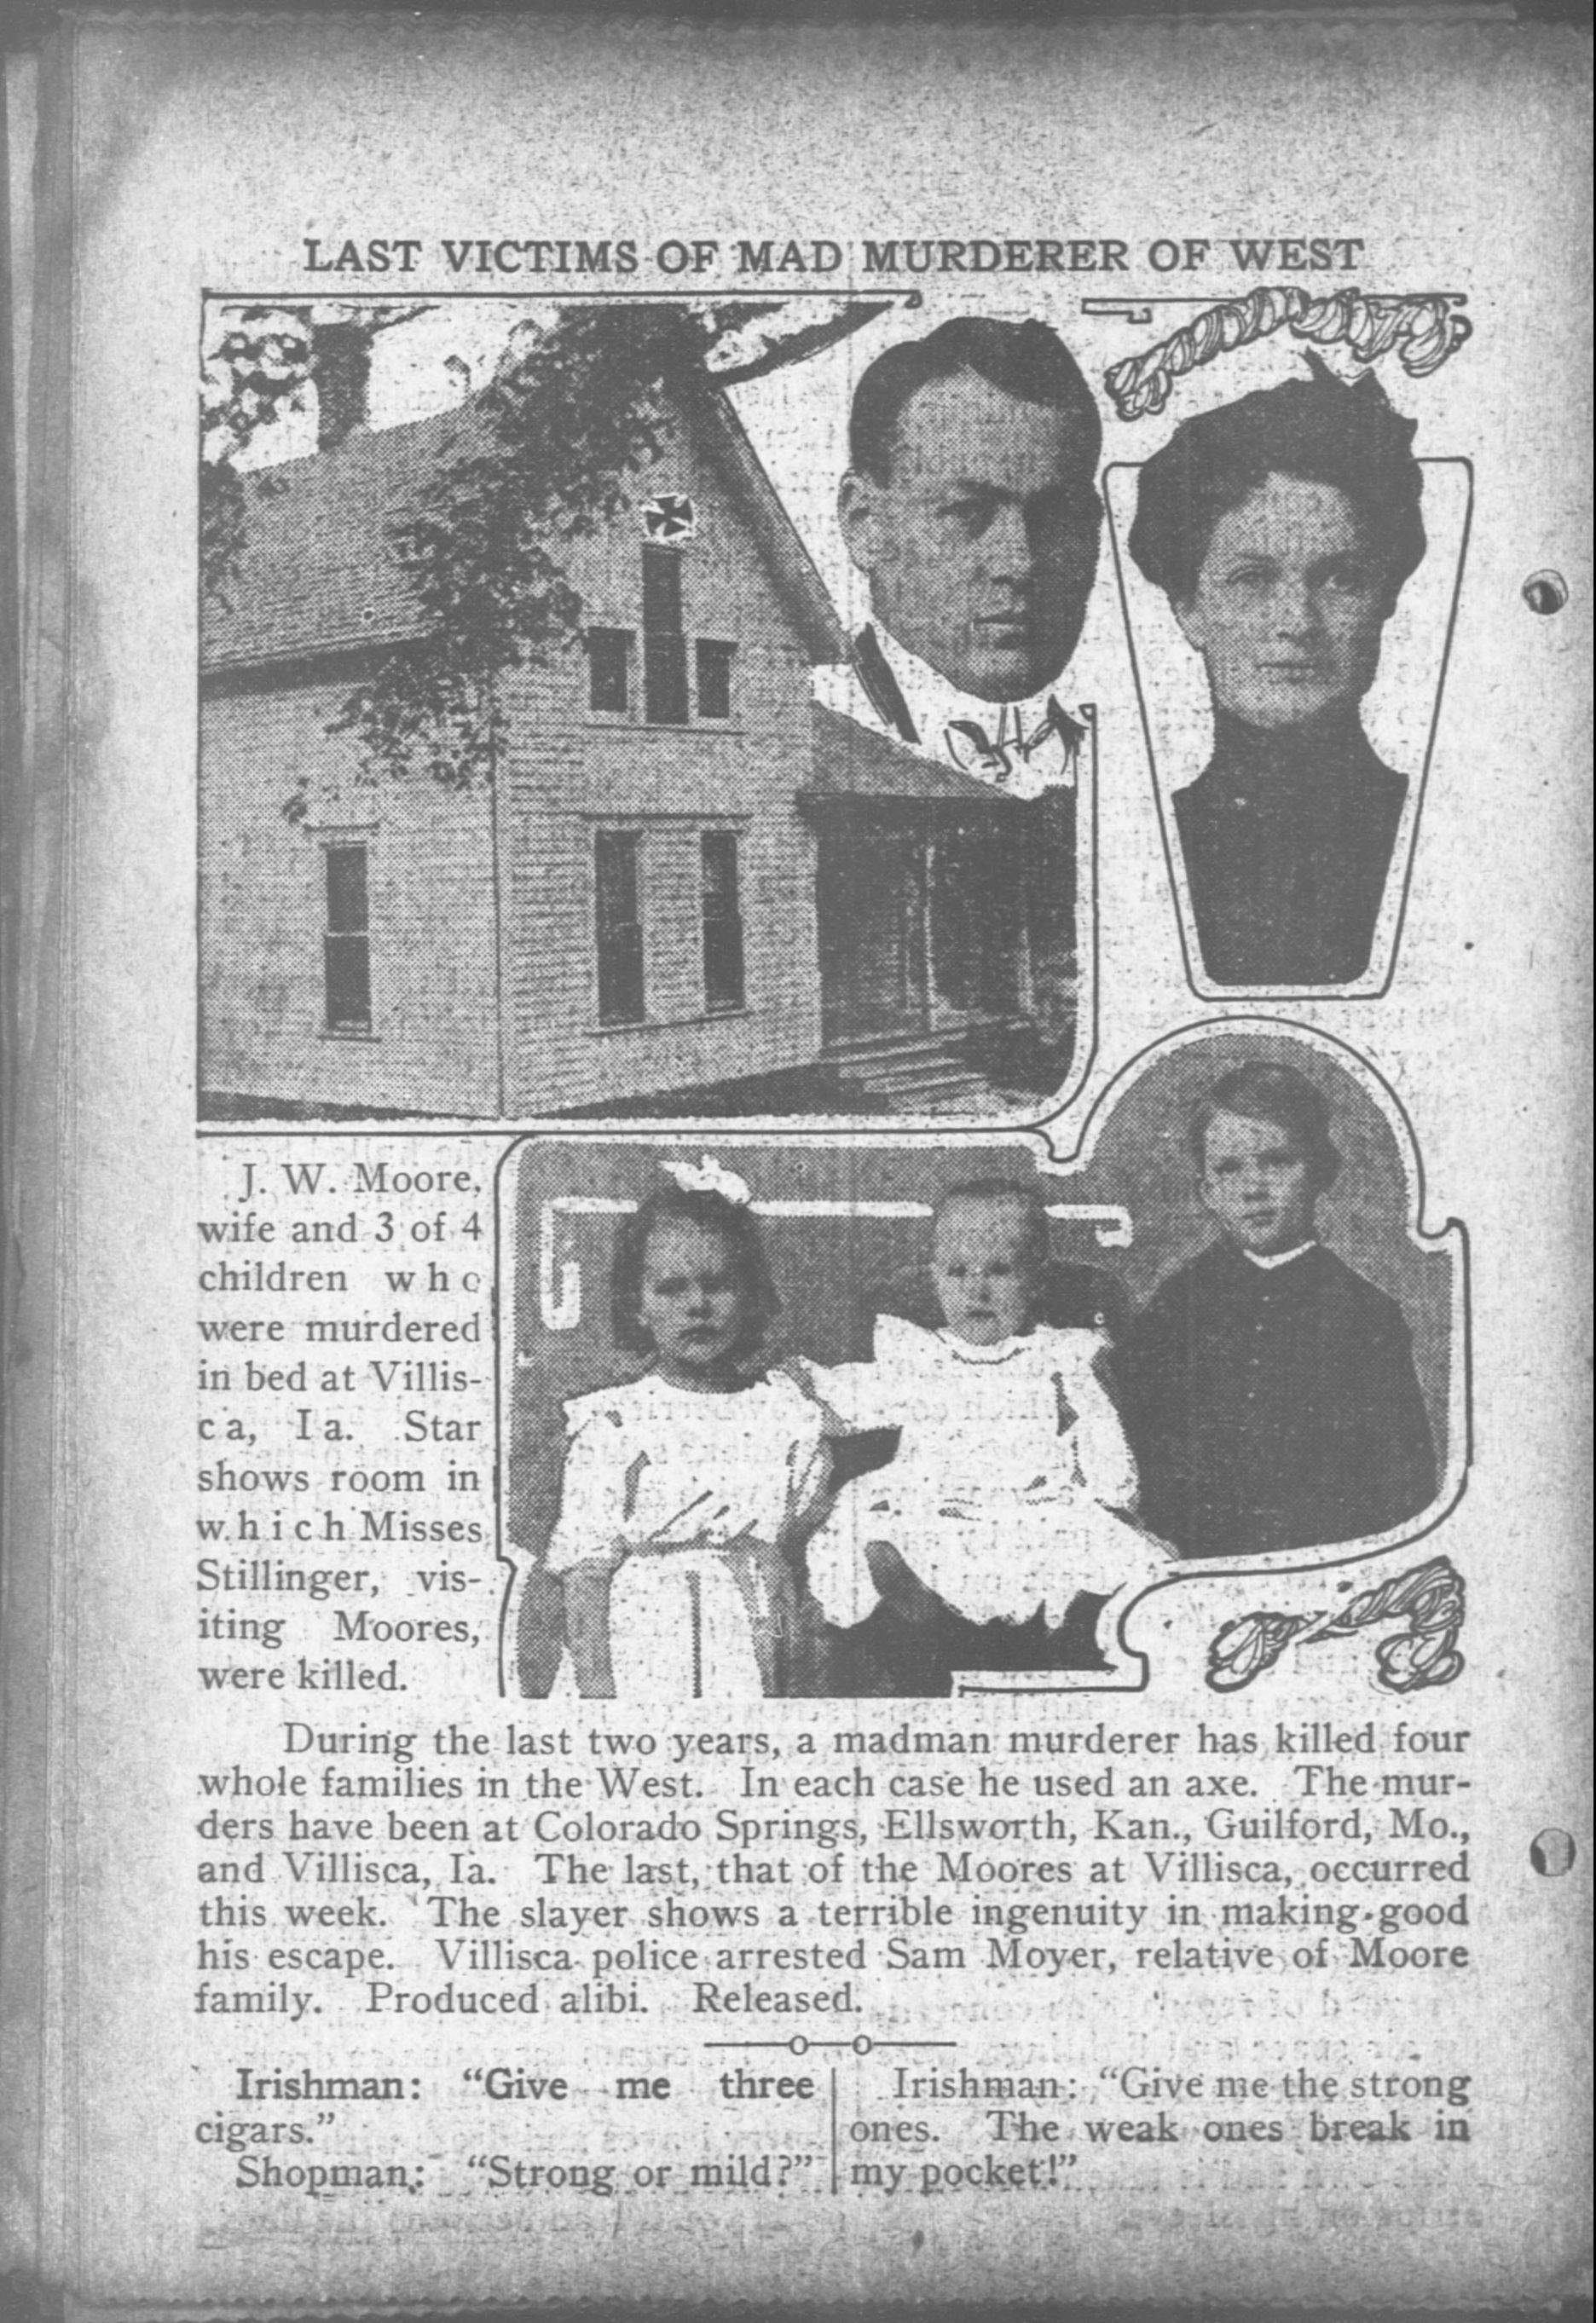 The Villisca Axe Murders in Iowa - A Century Old Cold Case